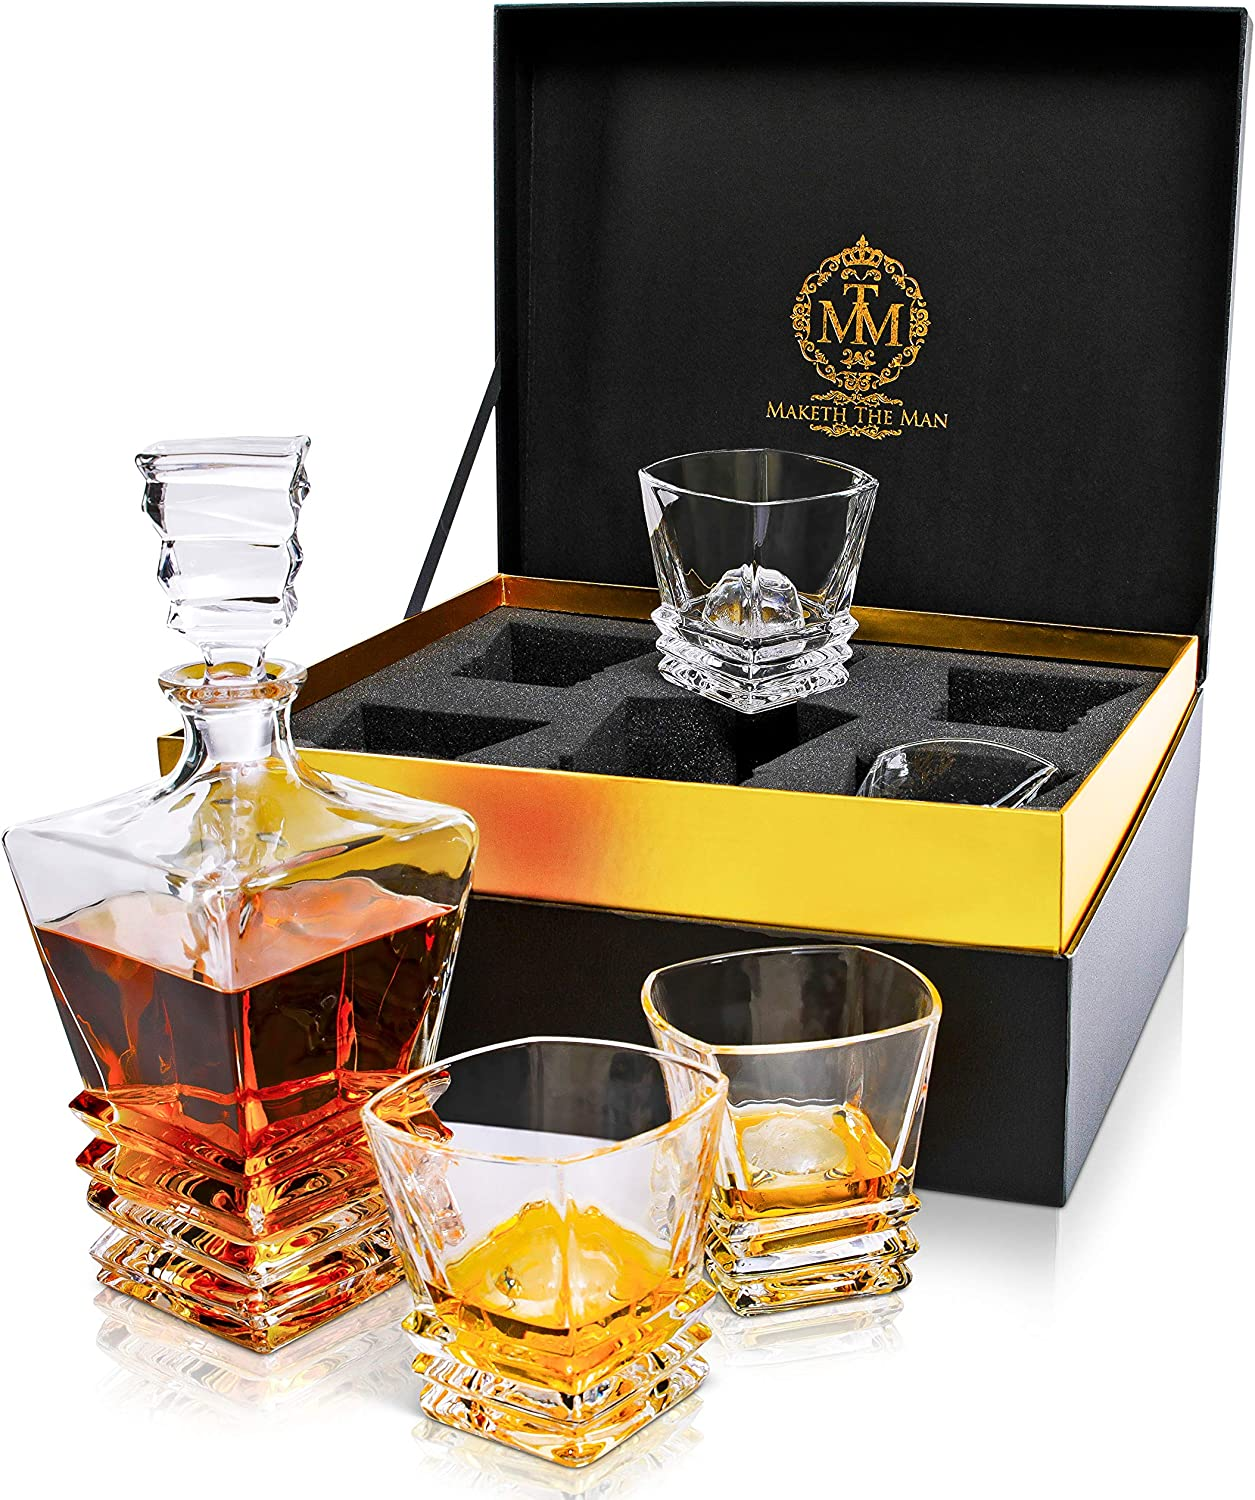 Amazon Com Premium Art Deco Whiskey Decanter Set 27oz Scotch Whisky Decanter In Stunning Gift Box Genuine Lead Free Crystal Bourbon Decanter For Men European Design Decanter And Glasses Glass Fits 2